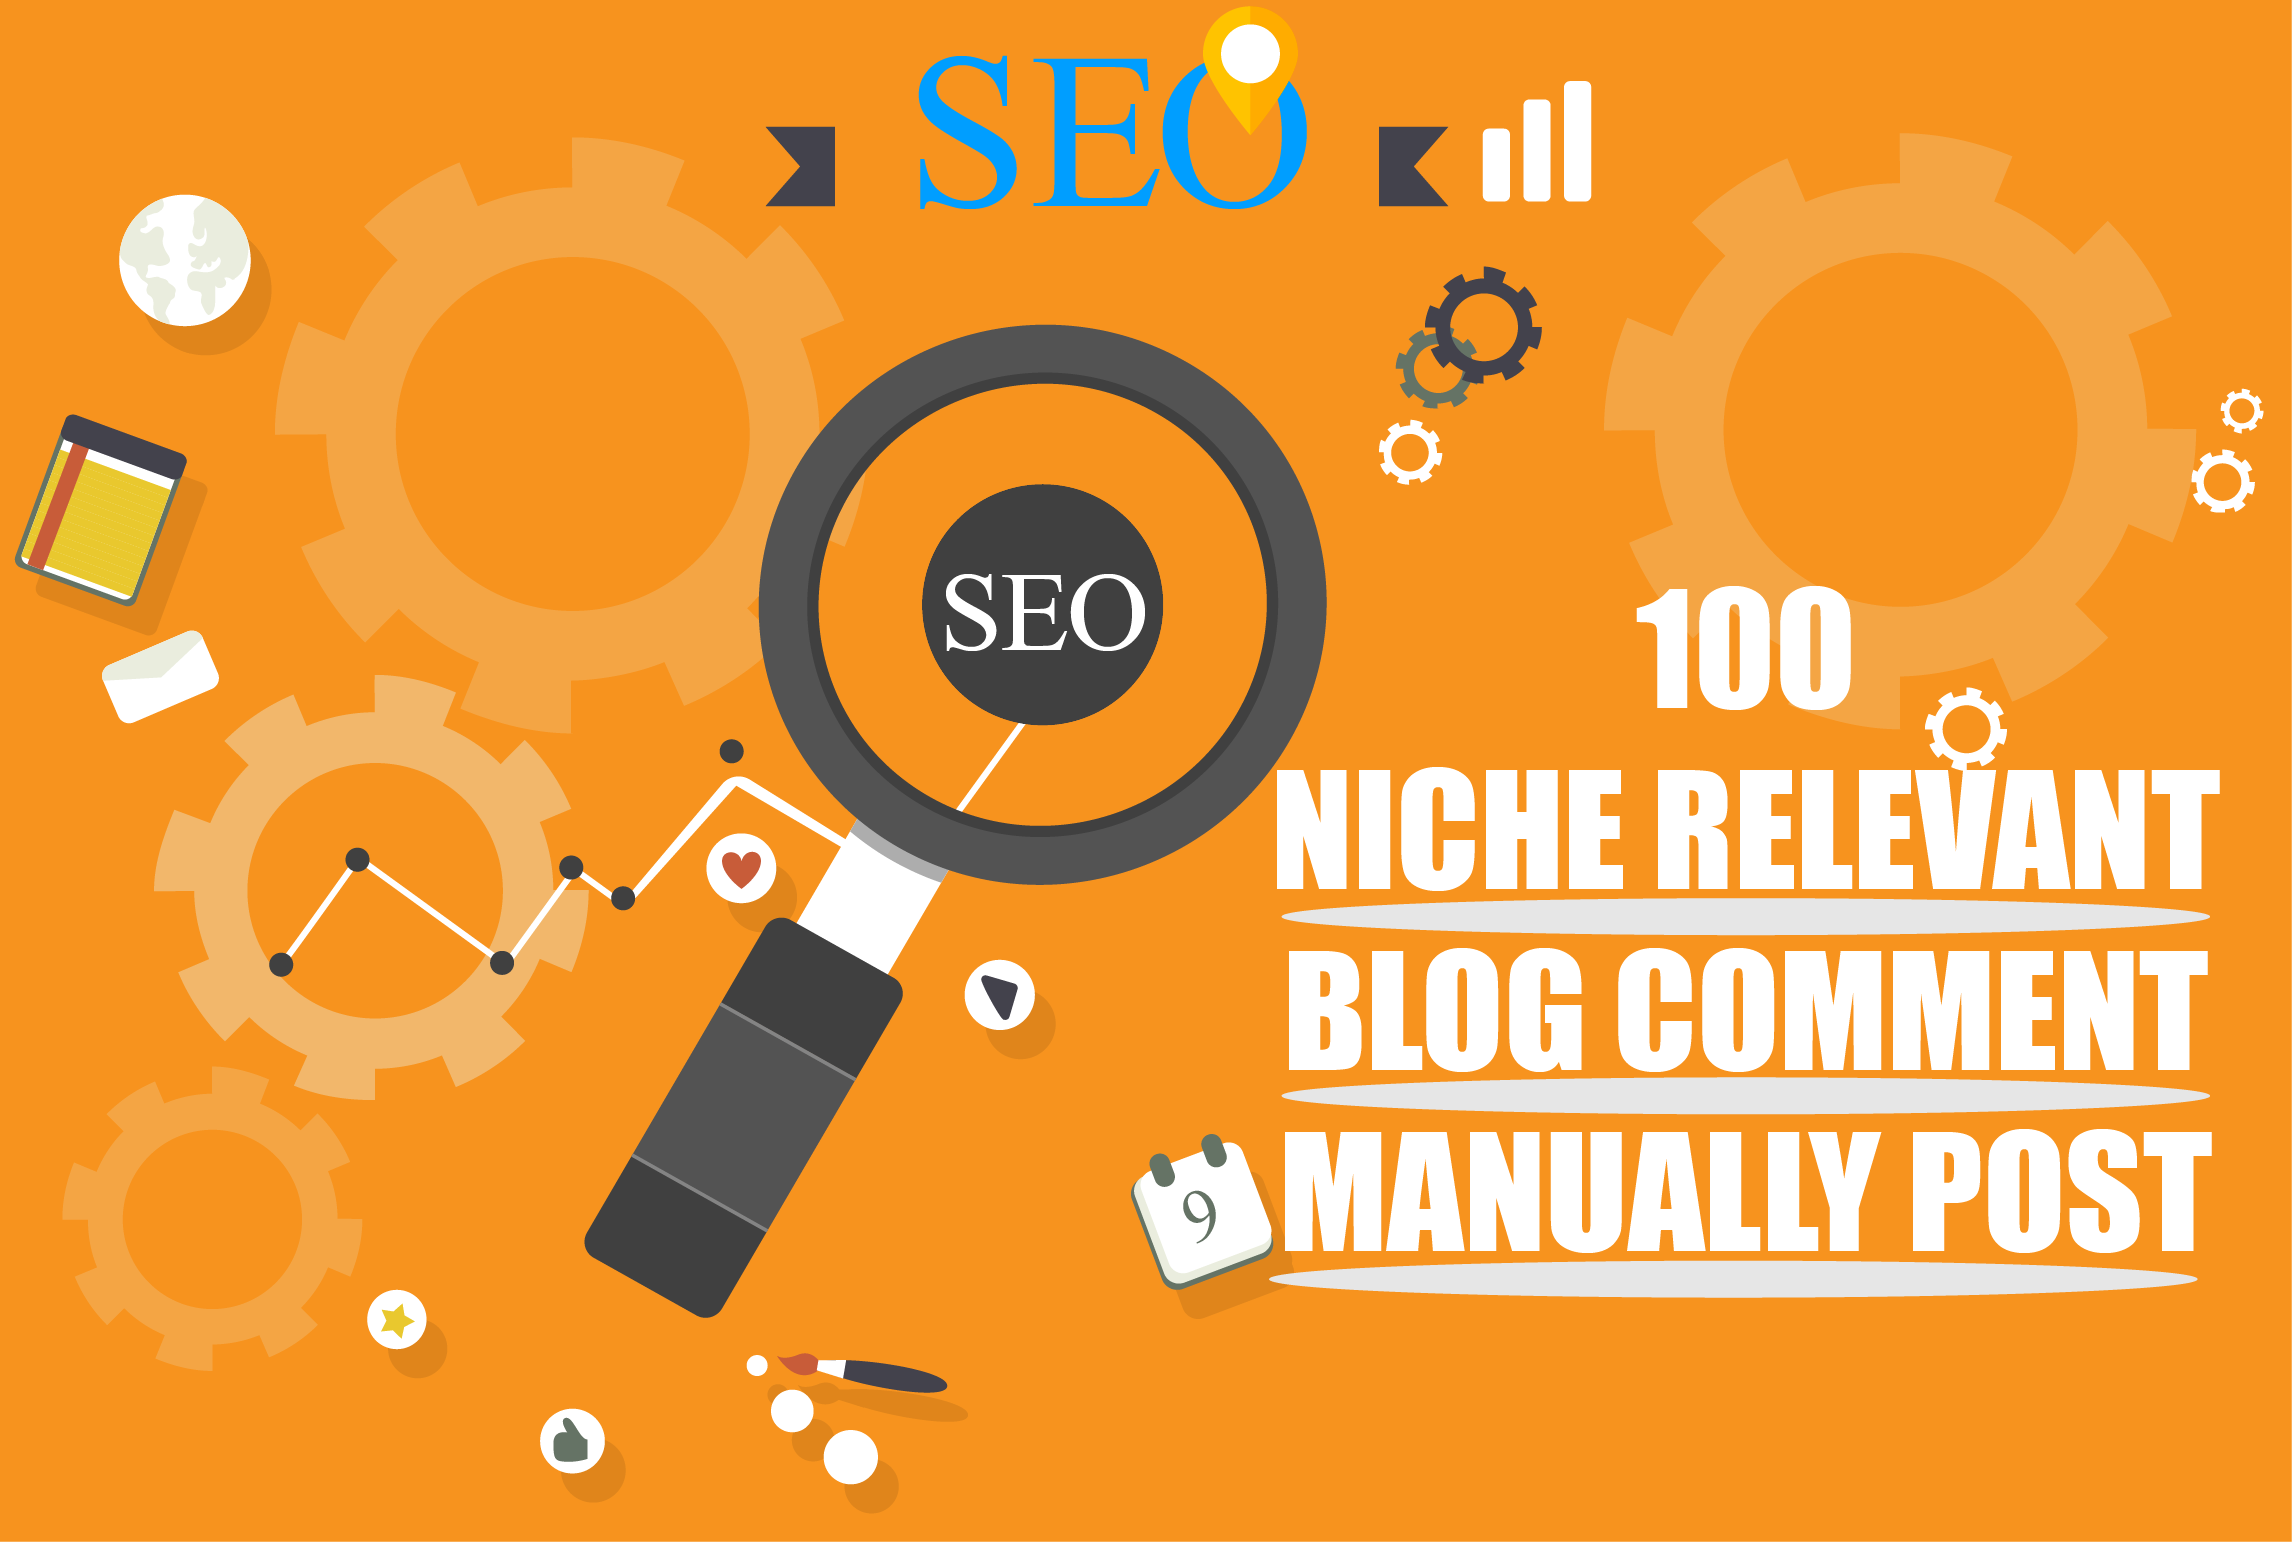 I will do 100 niche relevant blog comment nofollow backlinks